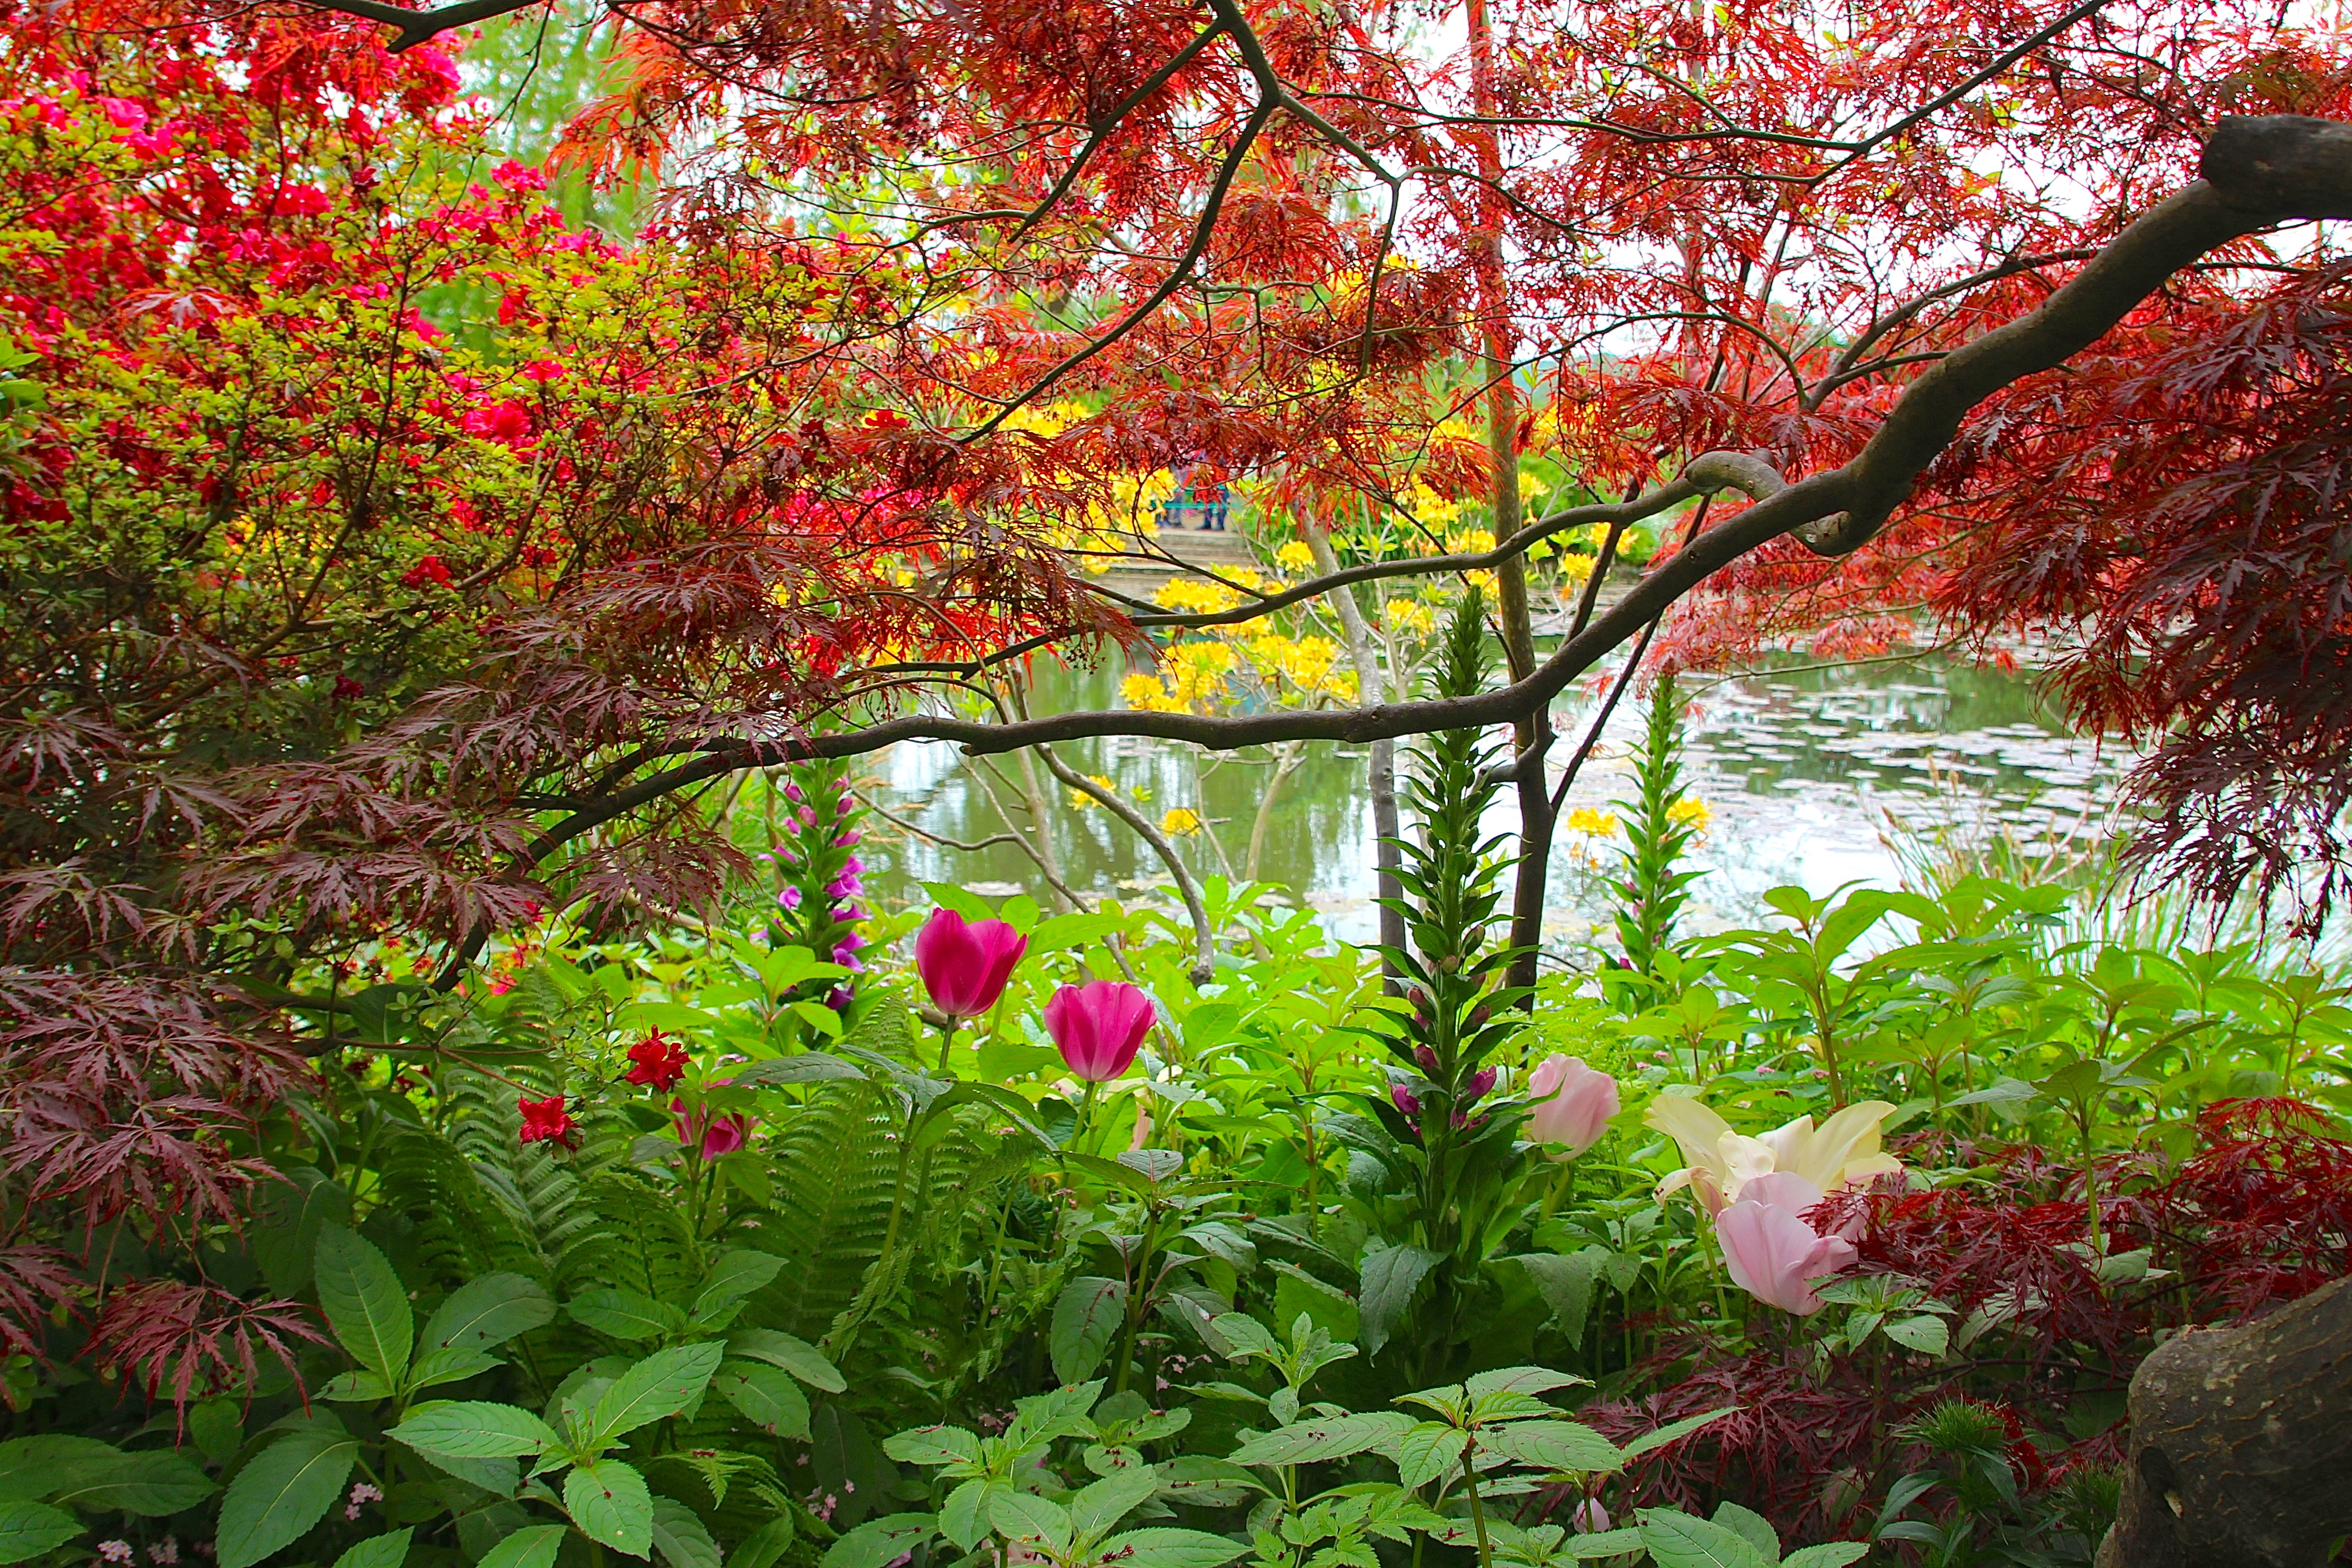 Spring flowers blooming at Giverny. France. 05.09.16. 14